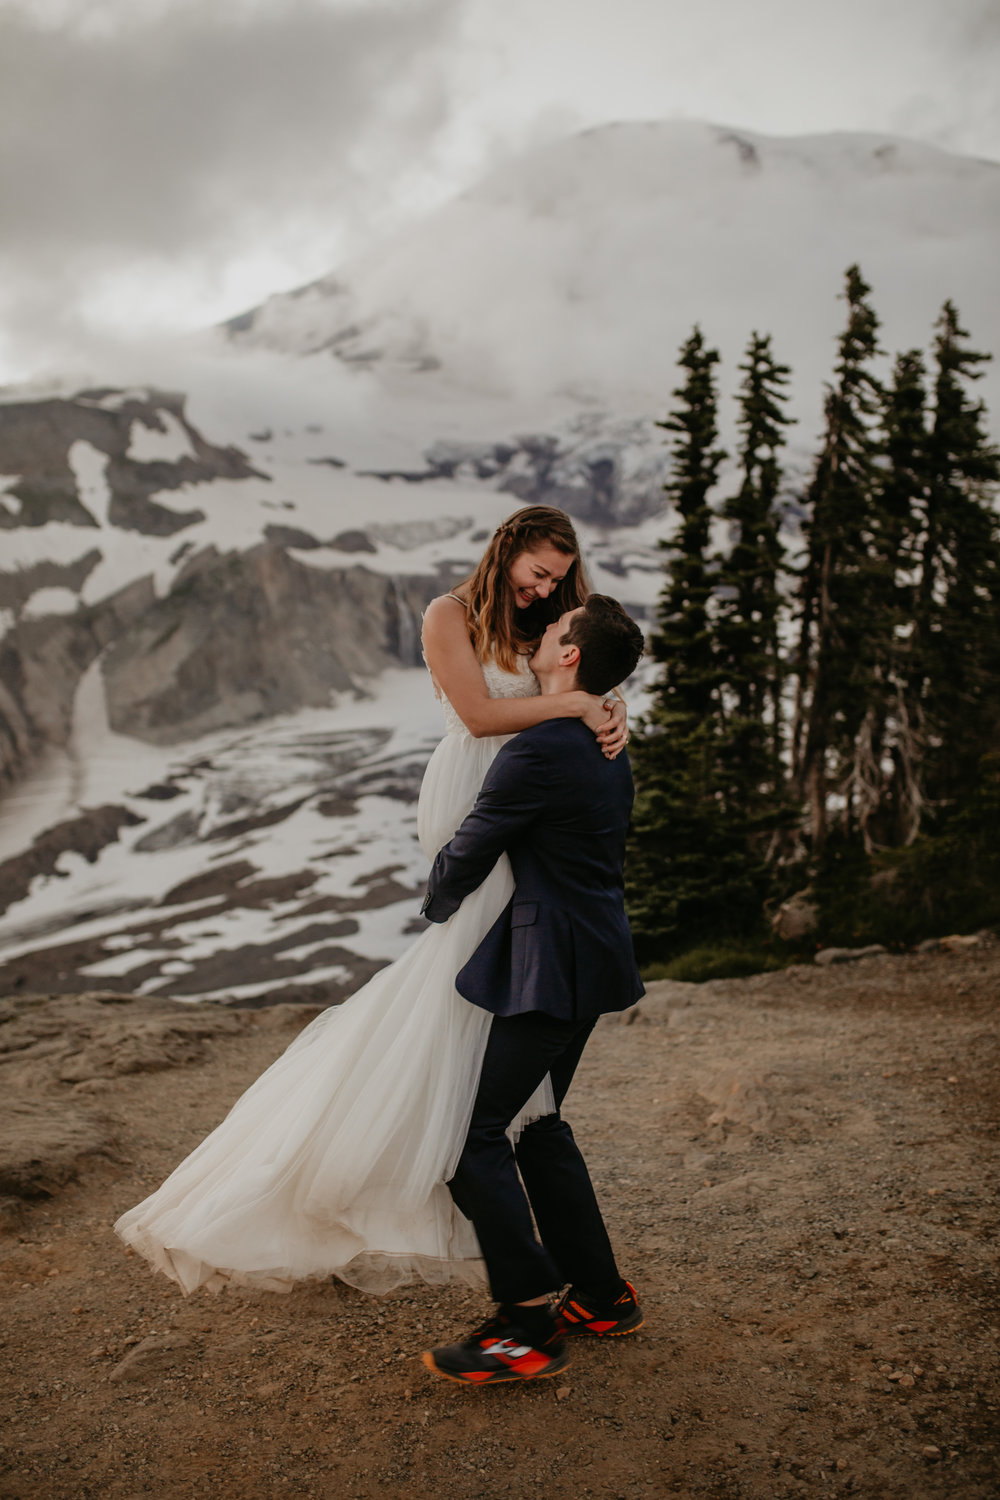 Nicole-Daacke-Photography-Mt-Rainier-elopement-photographer-washington-mountain-epic-wedding-photography-wildflowers-at-rainier-pine-tree-cloudy-summer-day-at-mountain-rainier-68.jpg